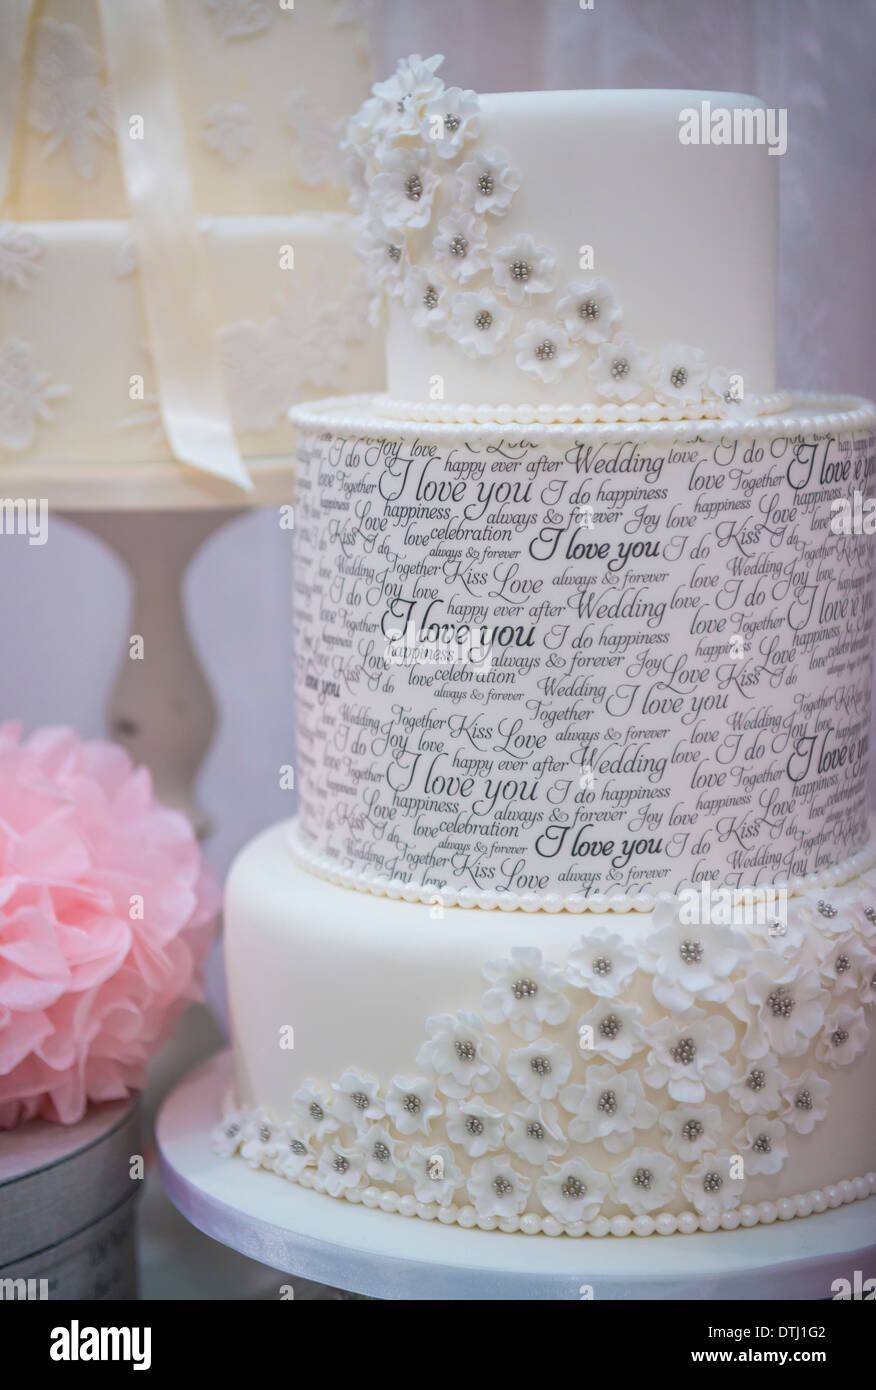 Cake Display Stock Photos & Cake Display Stock Images - Alamy